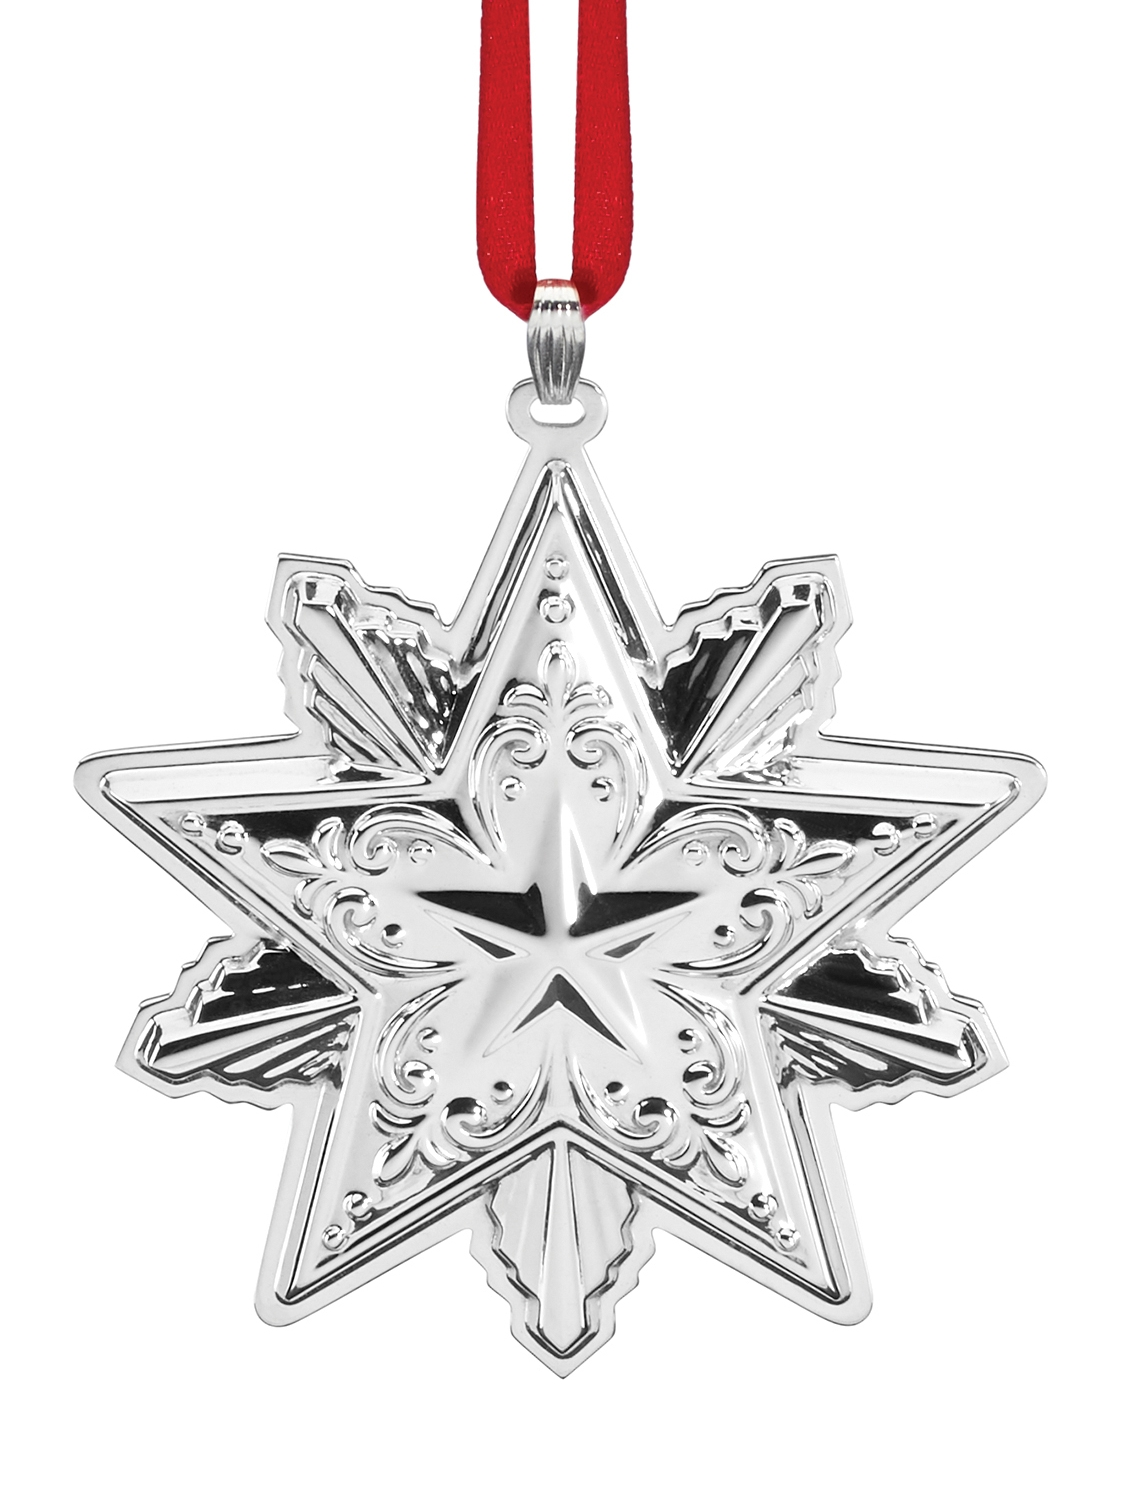 #93752 - Ornaments by Reed & Barton 2020 ANNUAL HOLIDAY STAR 4th Edition